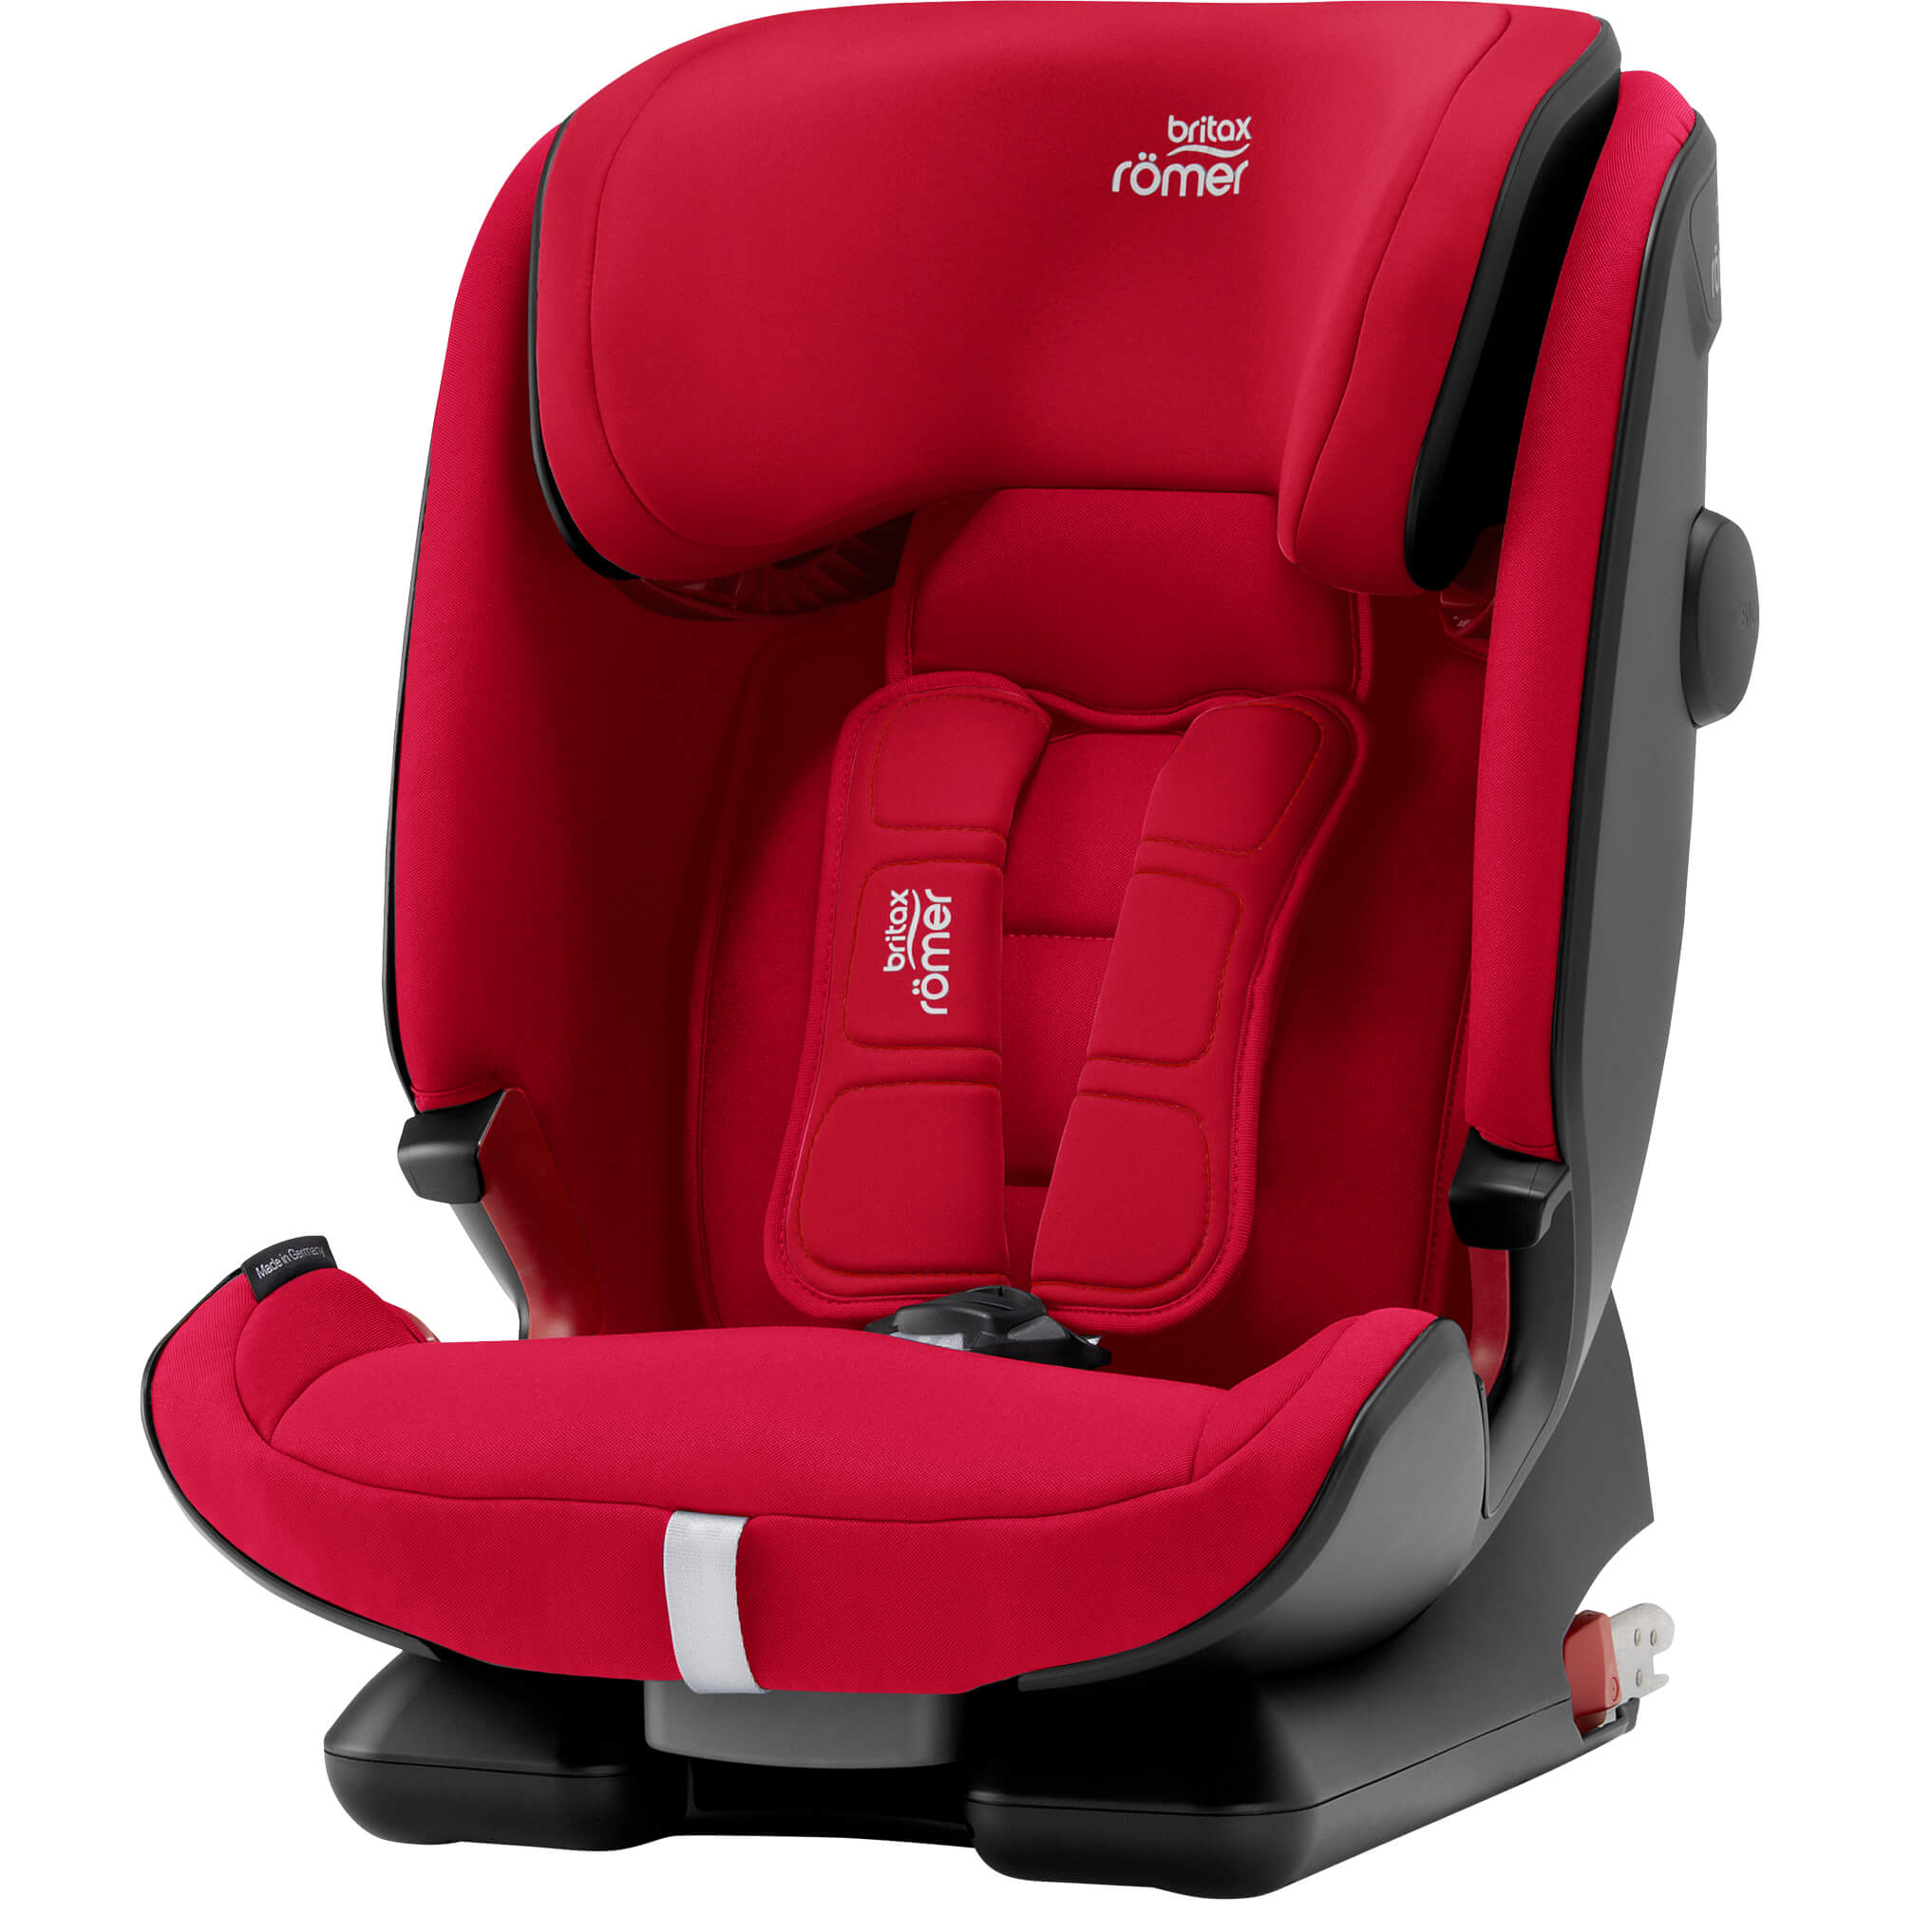 7cc2f319a6a Britax Römer Advansafix IV R - Fire Red - Child Seat group 1-2-3